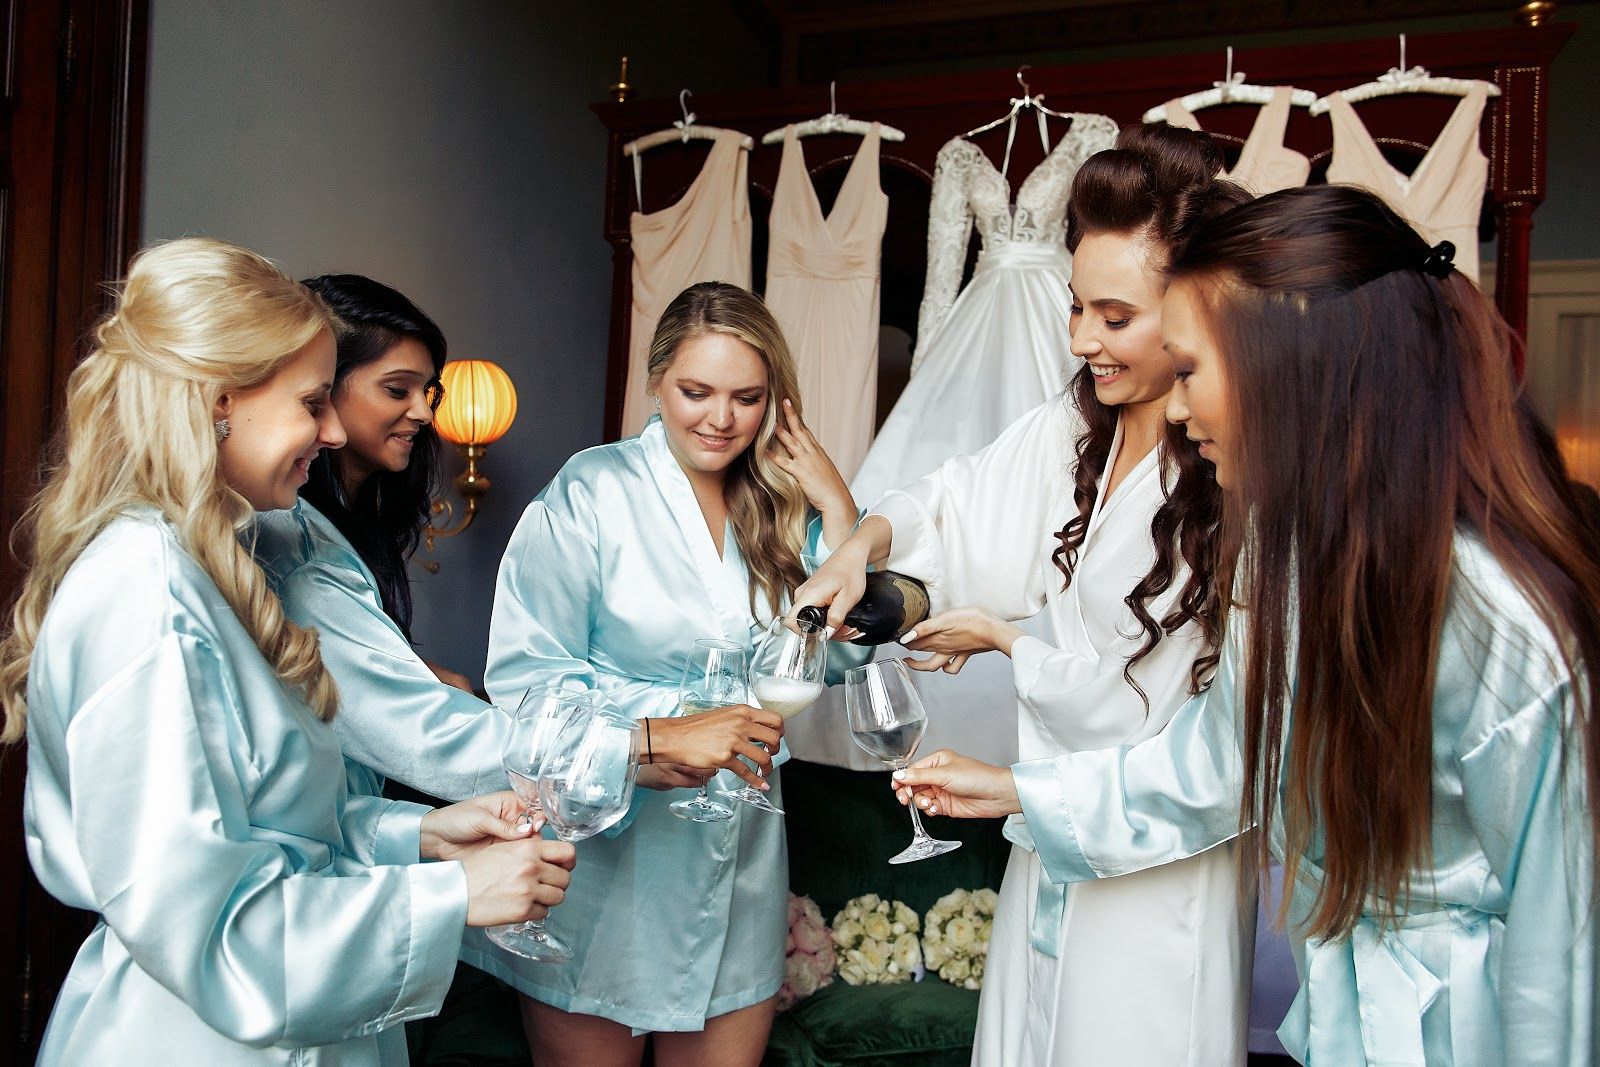 bridesmaid proposal ideas: Bride and bridesmaids in silk robes while having champagne